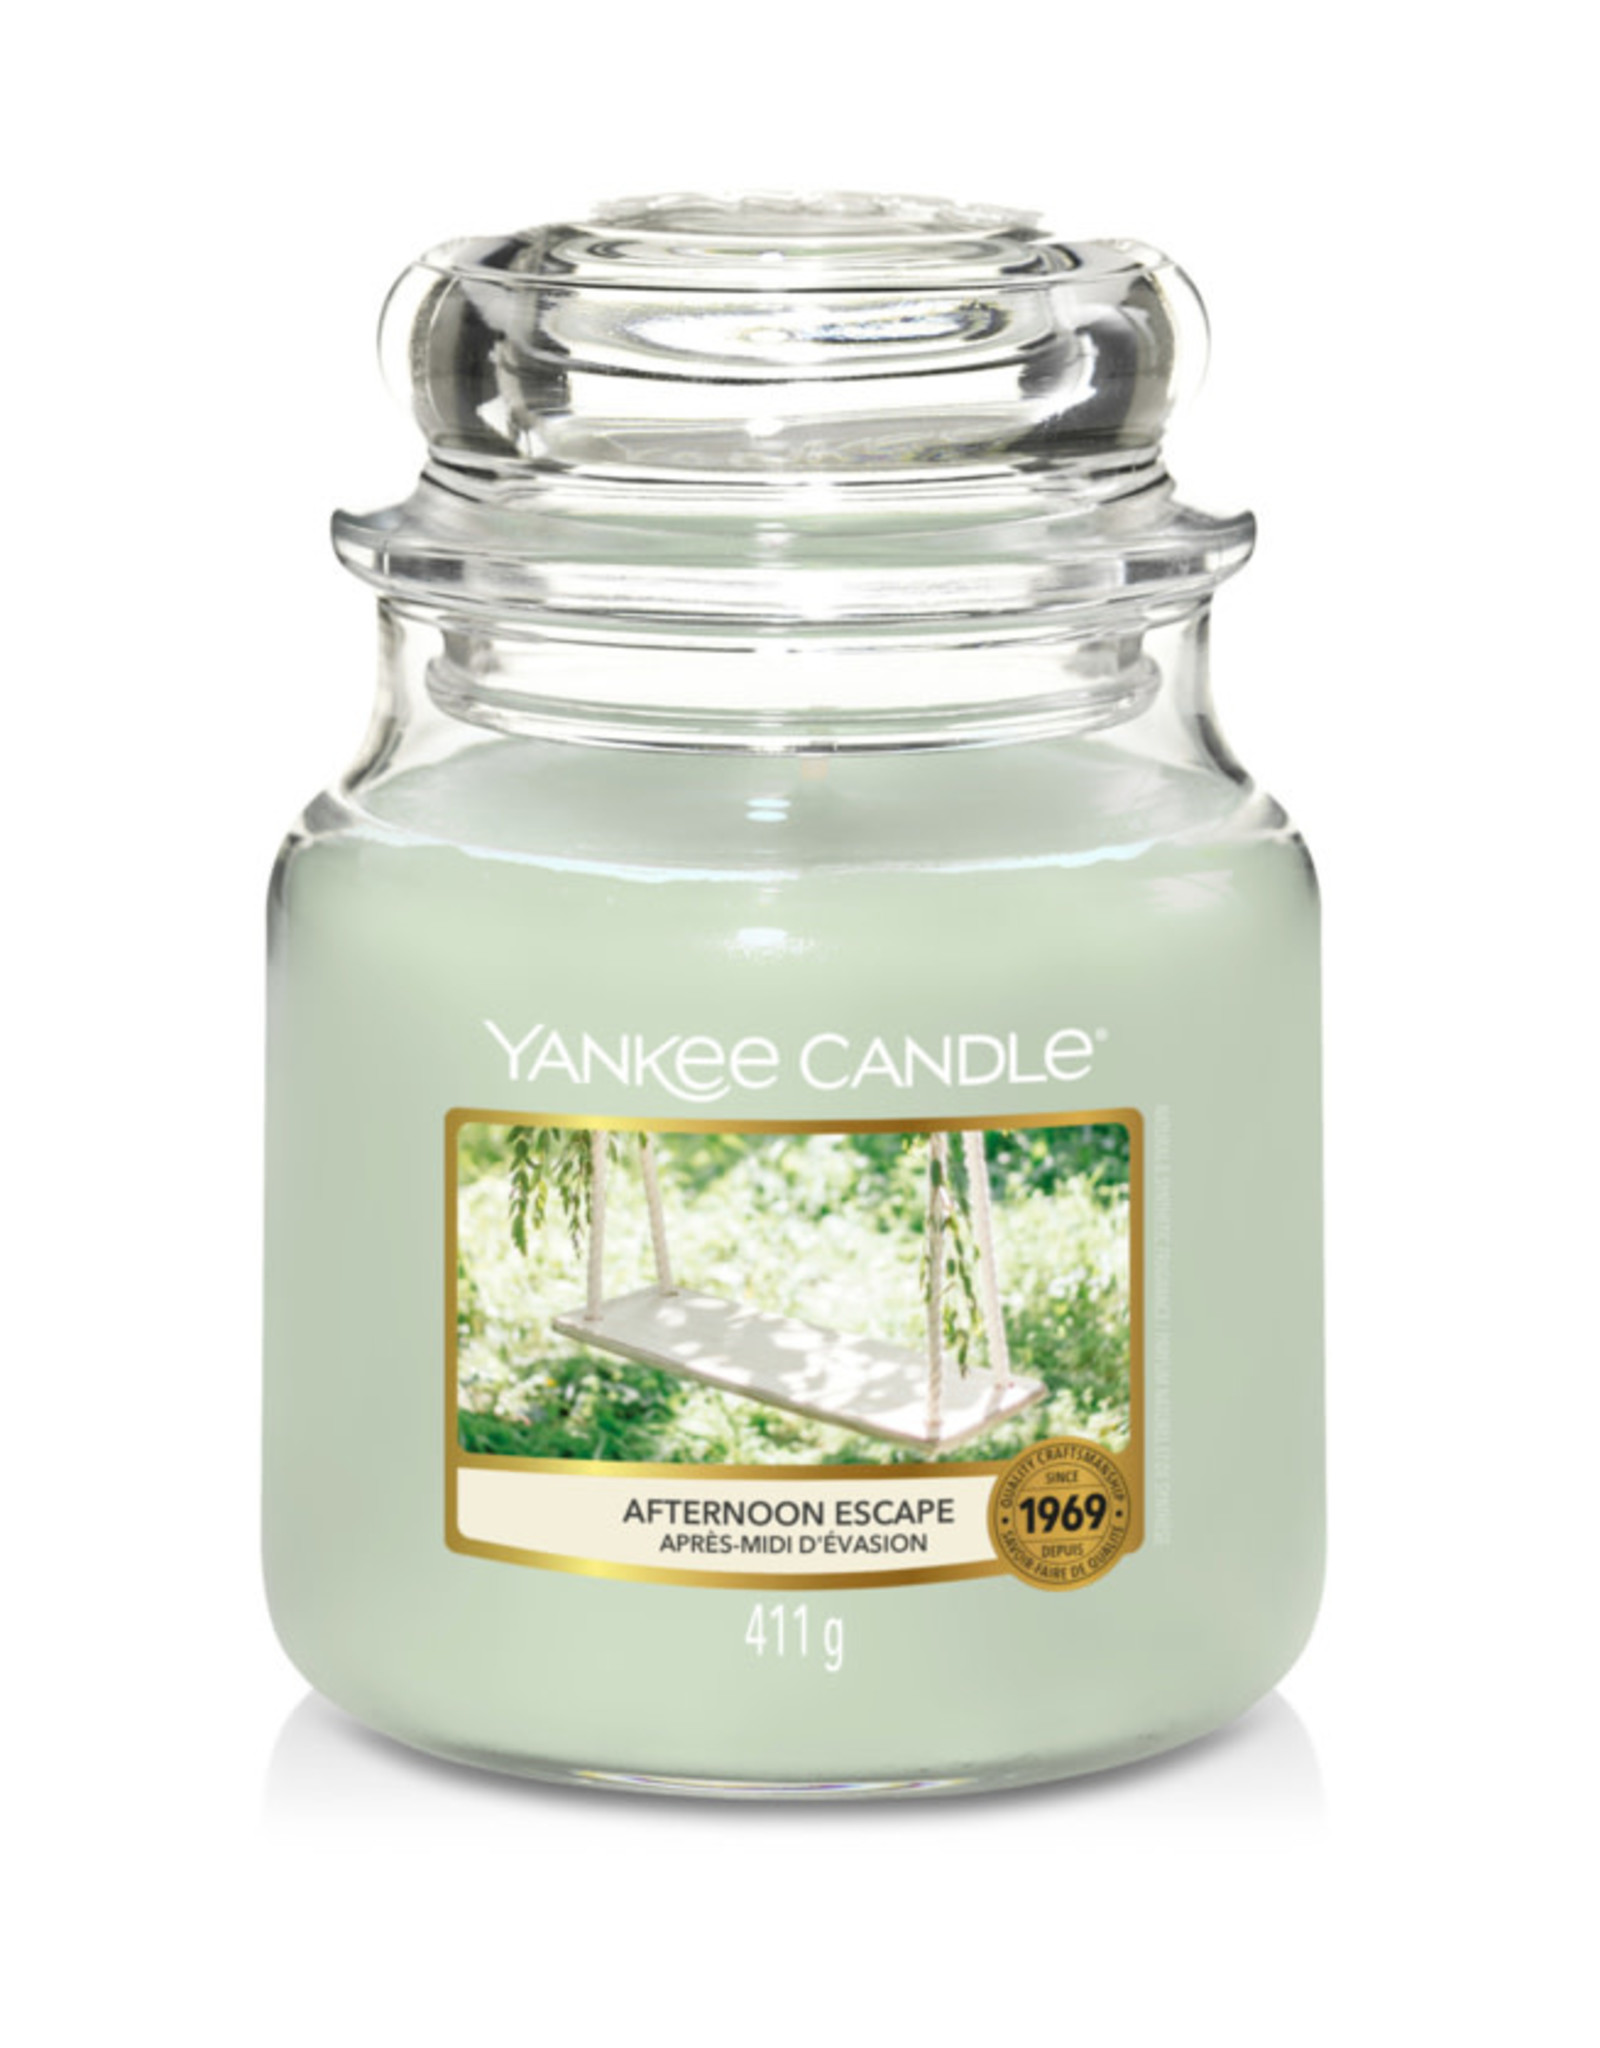 Yankee Candle Afternoon Escape Yankee Candle medium